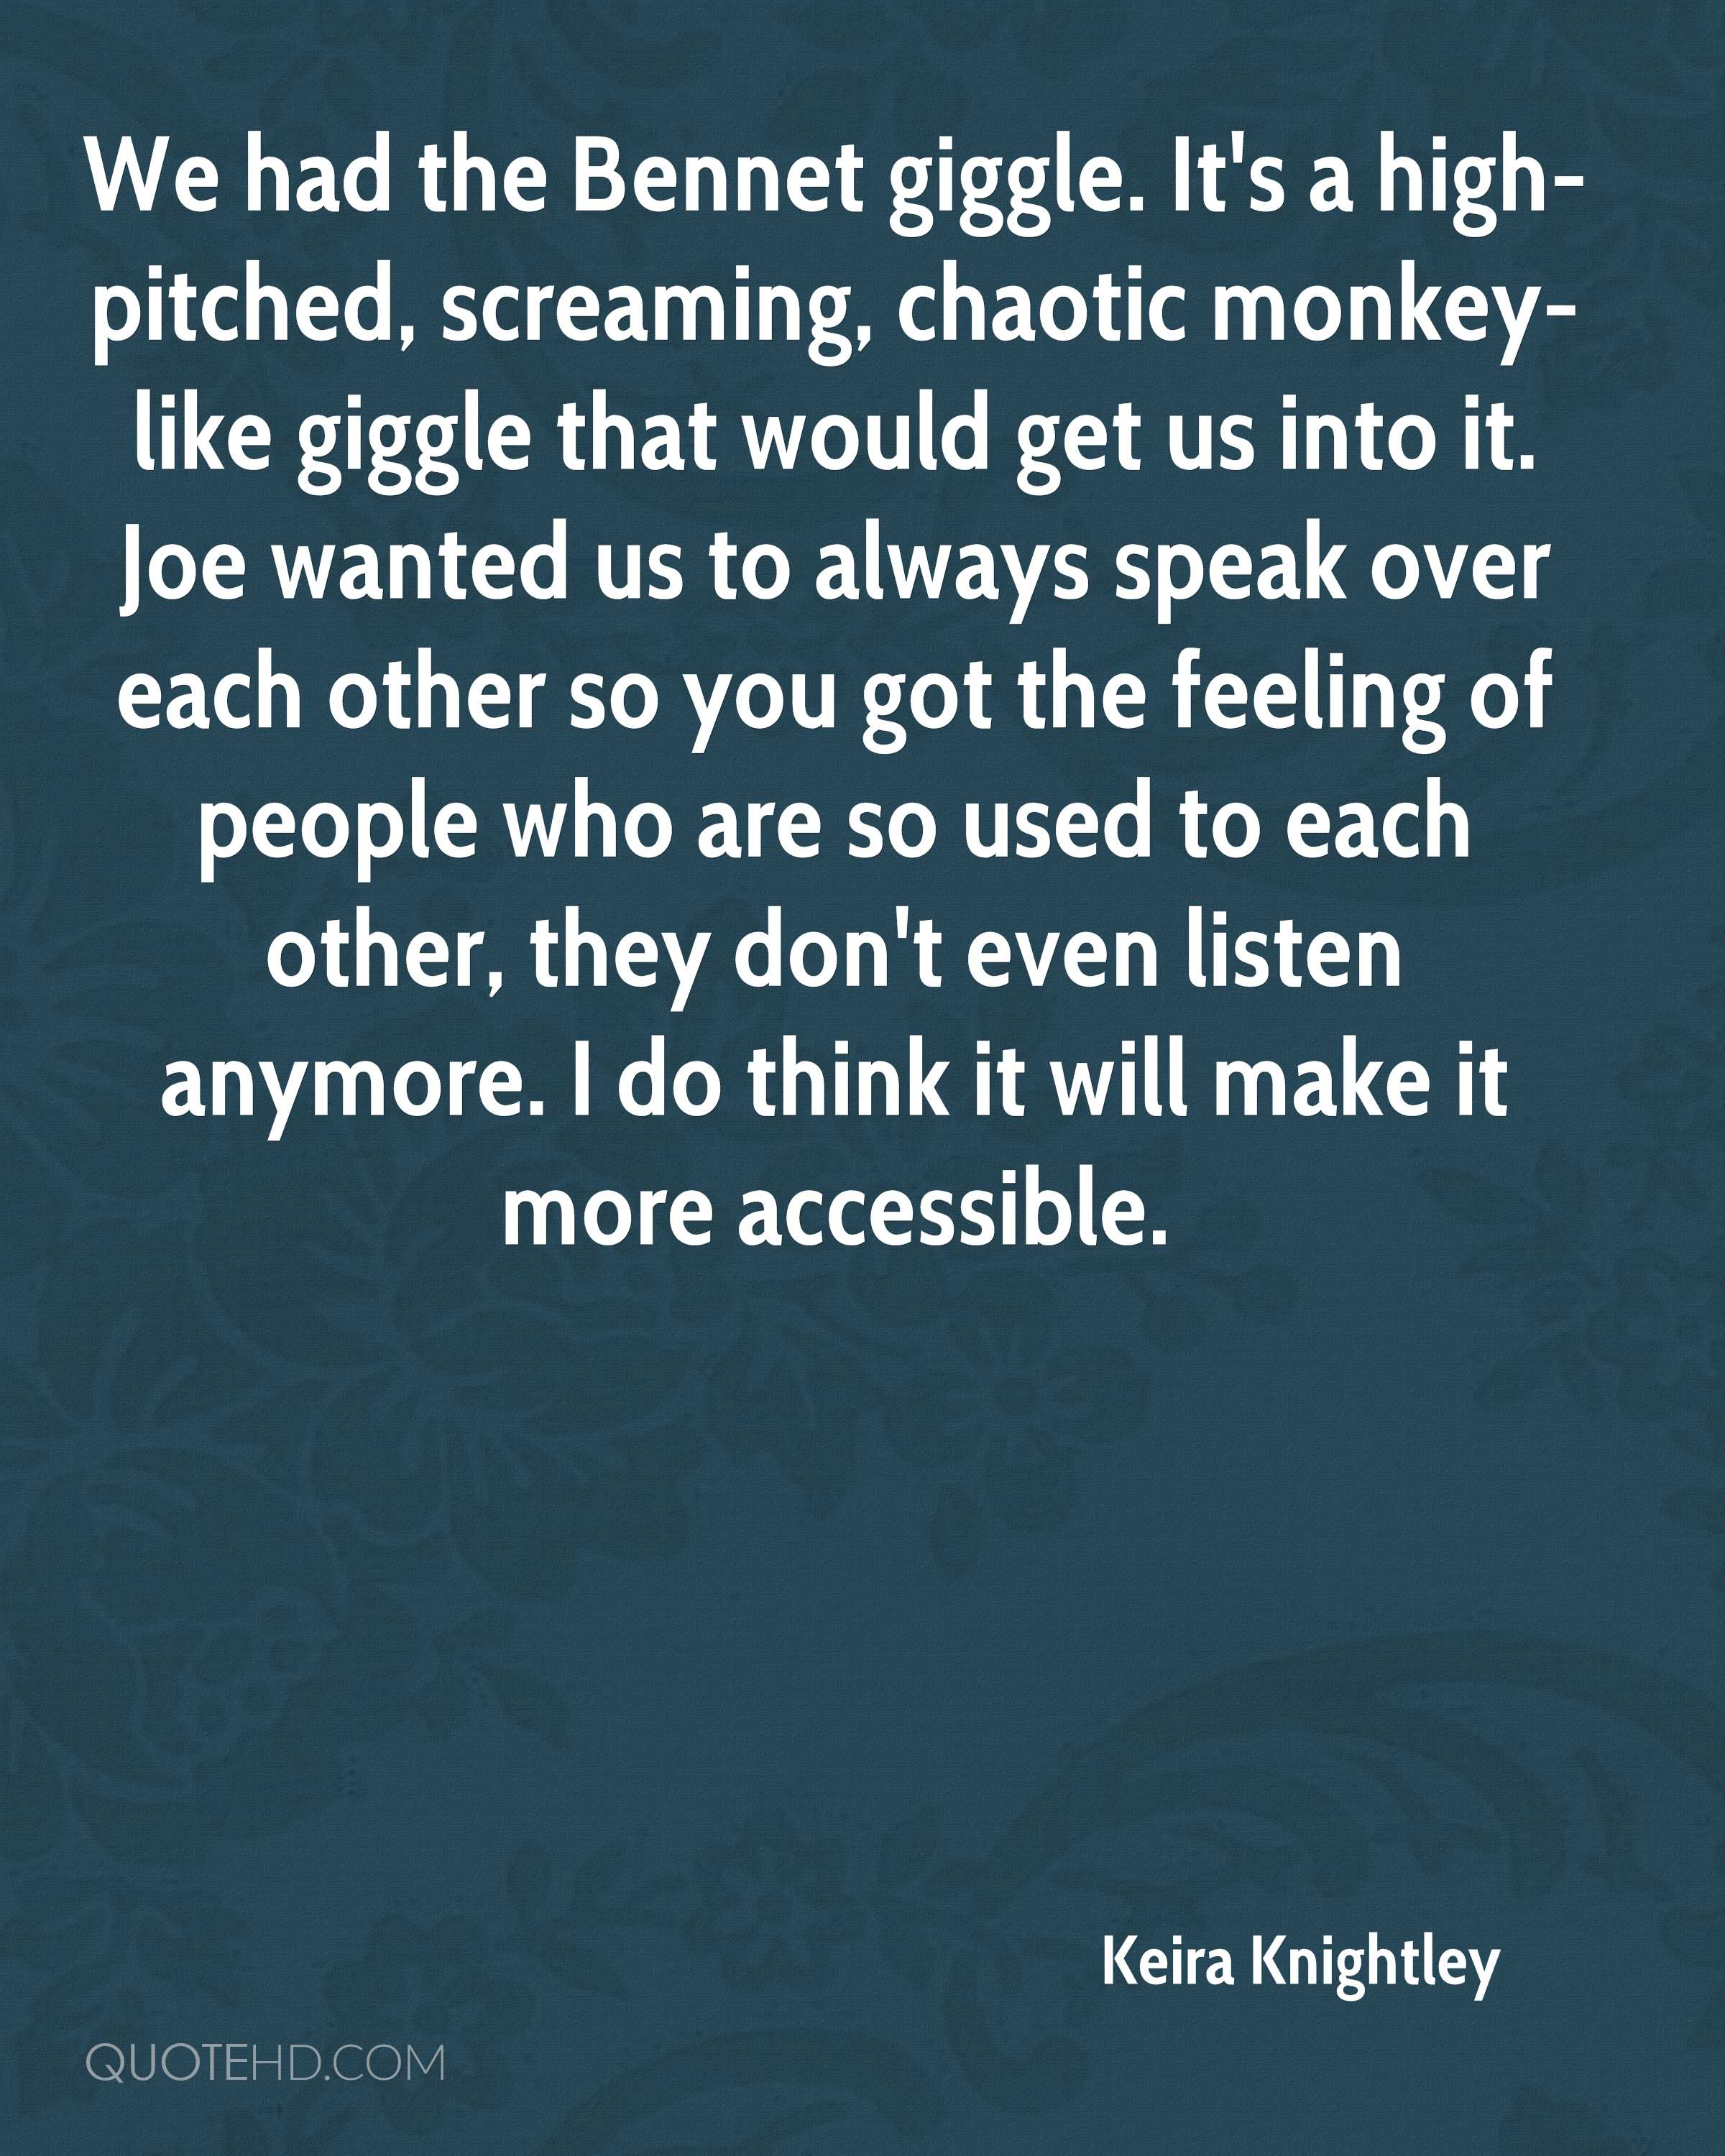 We had the Bennet giggle. It's a high-pitched, screaming, chaotic monkey-like giggle that would get us into it. Joe wanted us to always speak over each other so you got the feeling of people who are so used to each other, they don't even listen anymore. I do think it will make it more accessible.